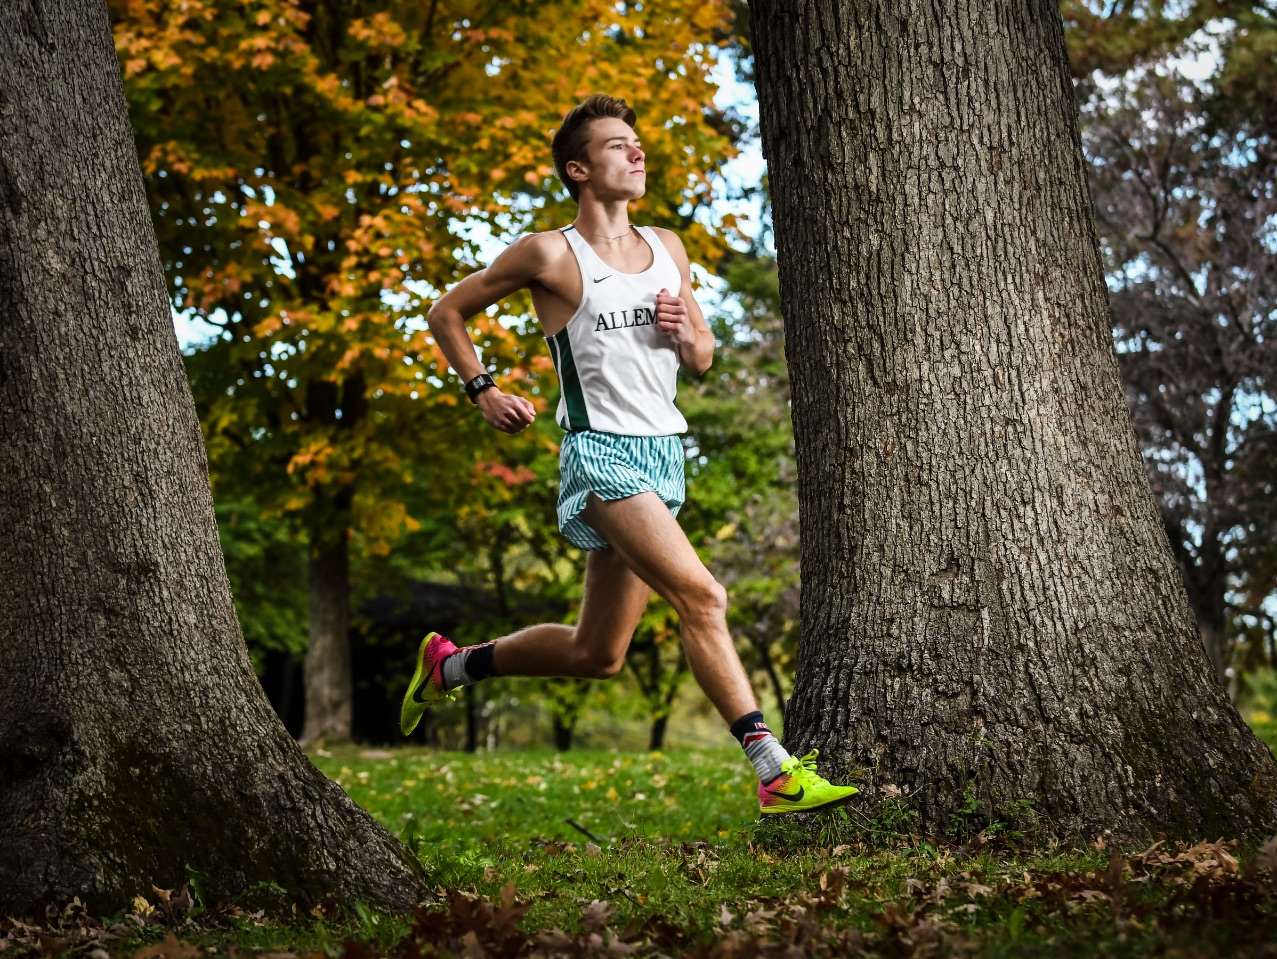 Alleman boys' cross country standout Spencer Smith. (Todd Mizener - Dispatch/Argus)